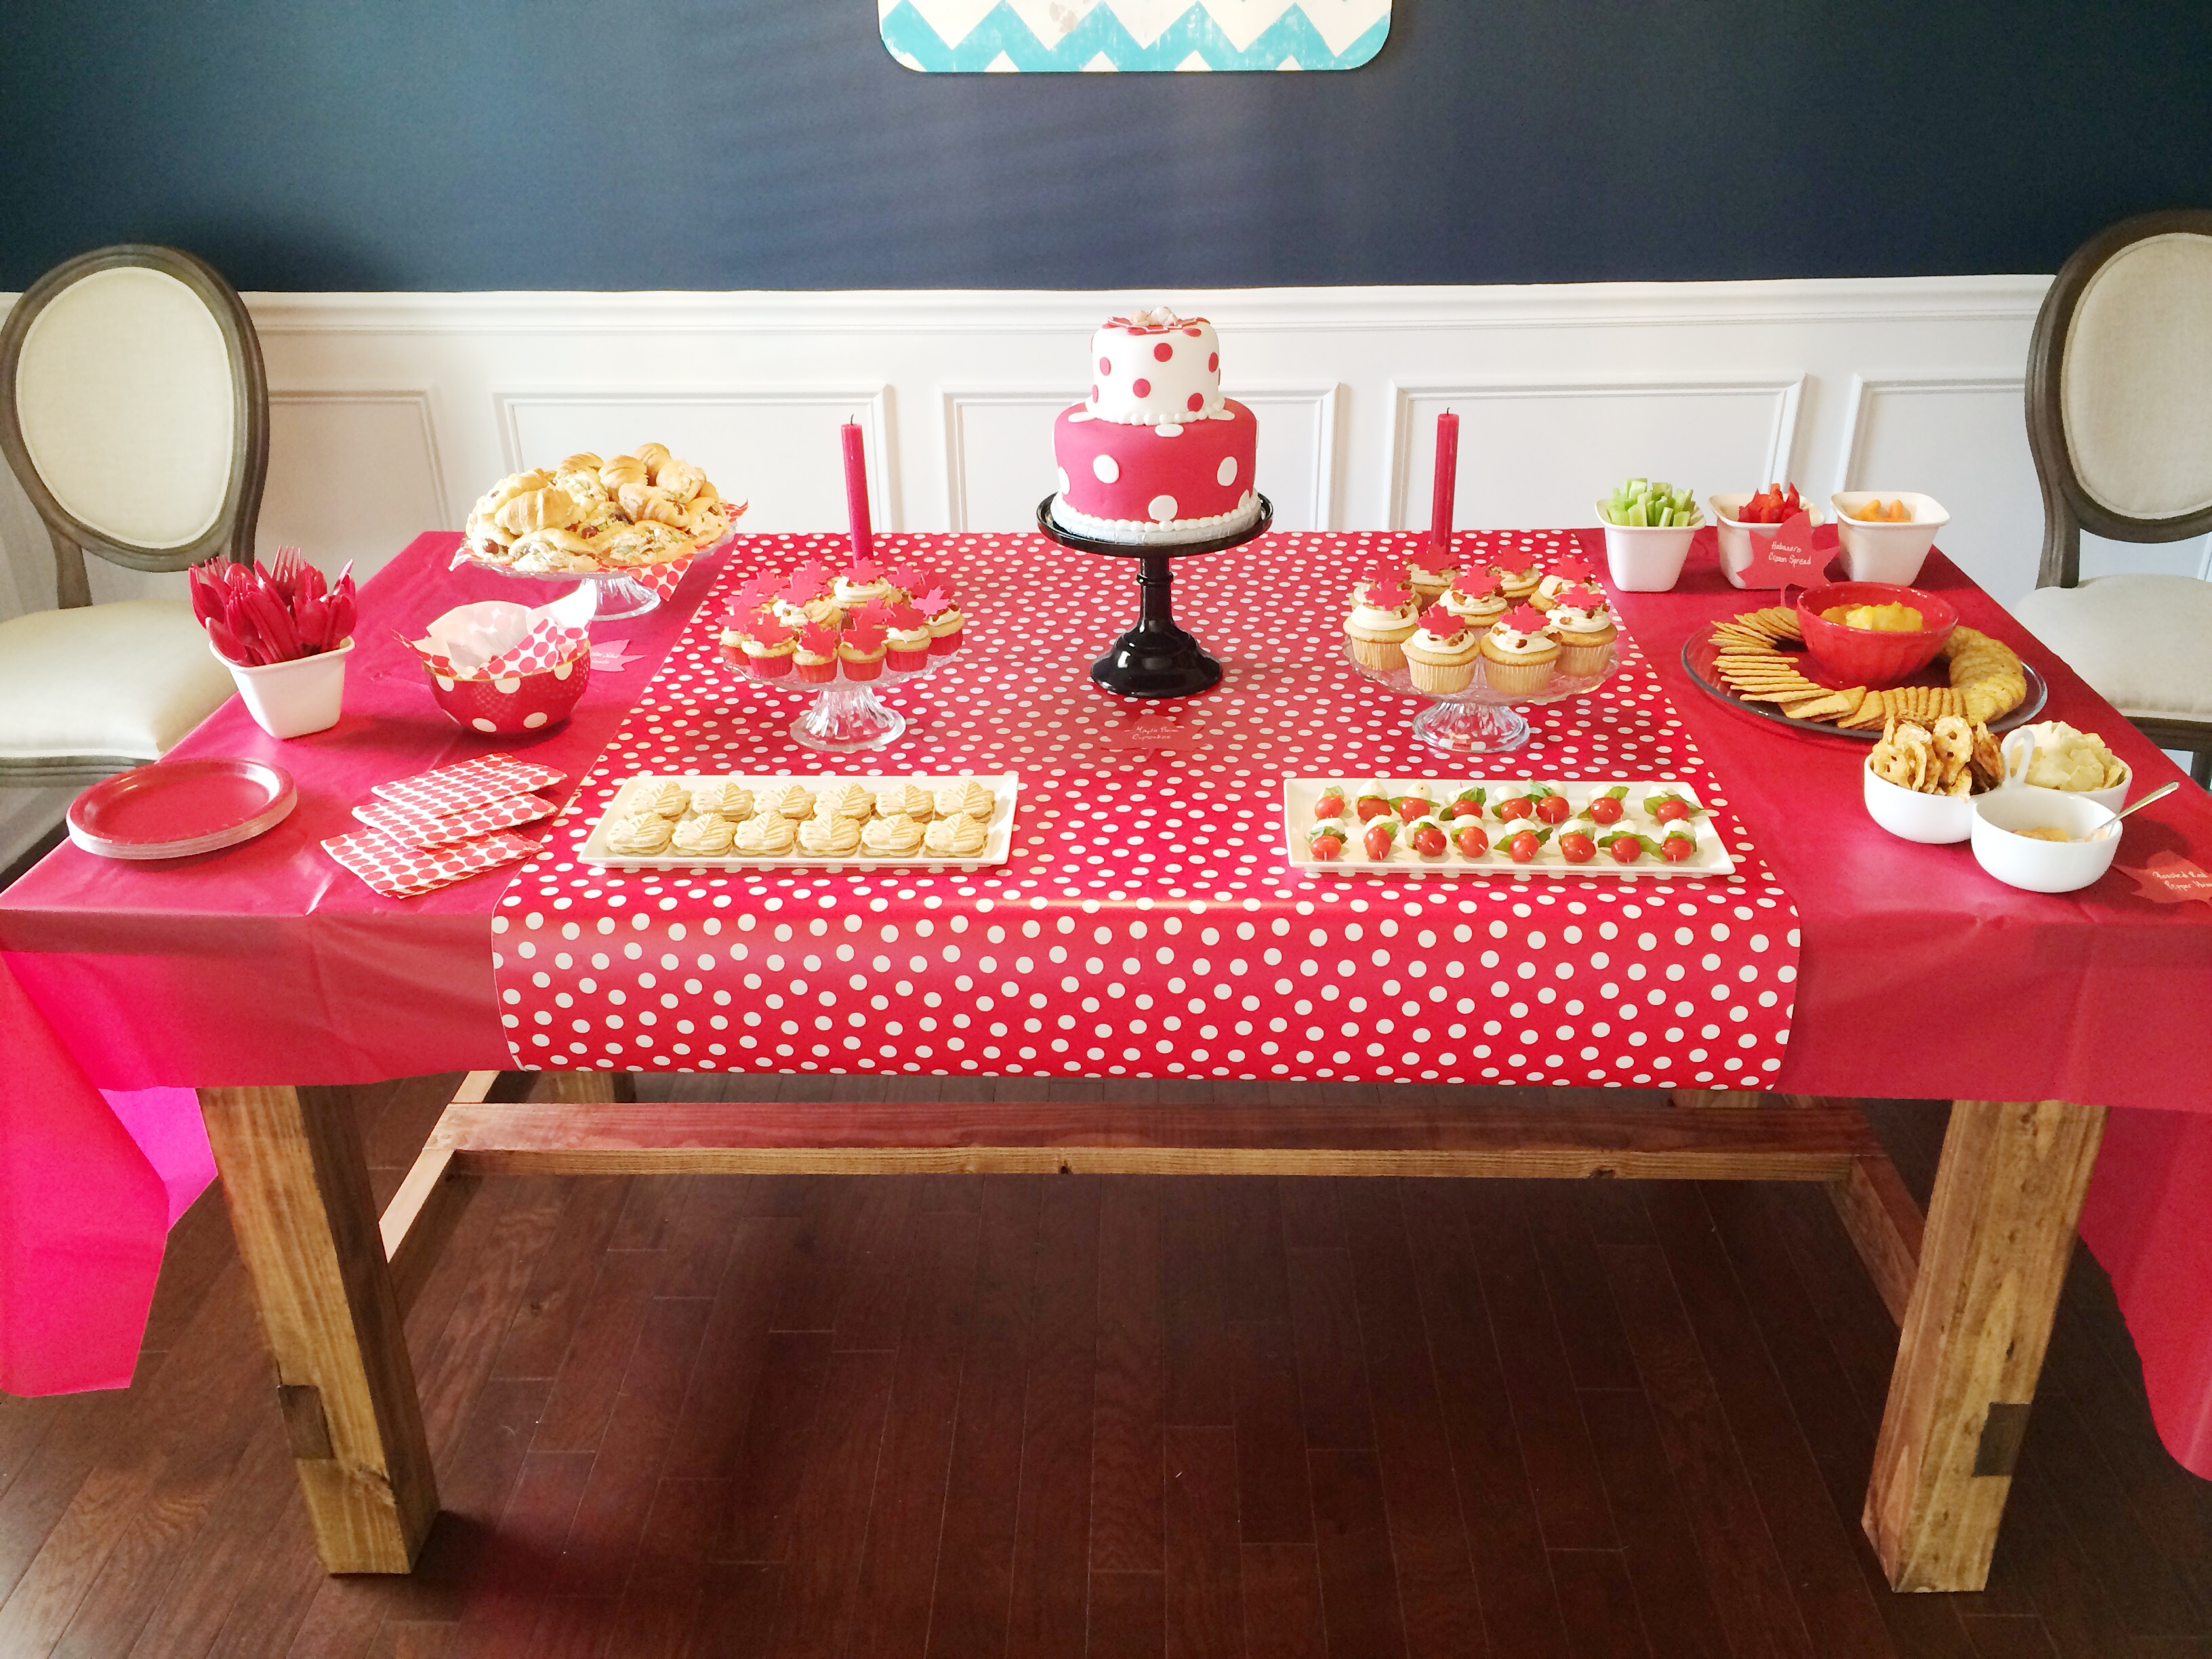 BabEH Shower: Canadian Themed Baby Shower | Mandy and Conner